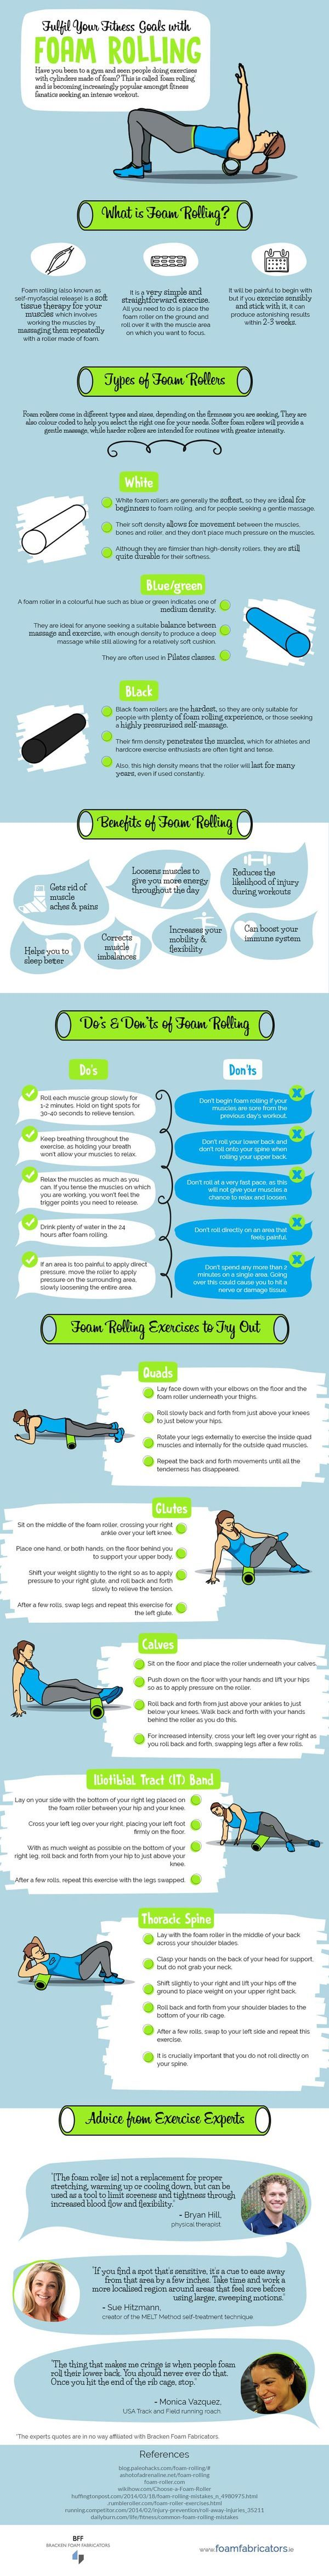 Are you new to foam rolling and want to know more? Here's a perfect starting guide so you can make it an addition to your workout!